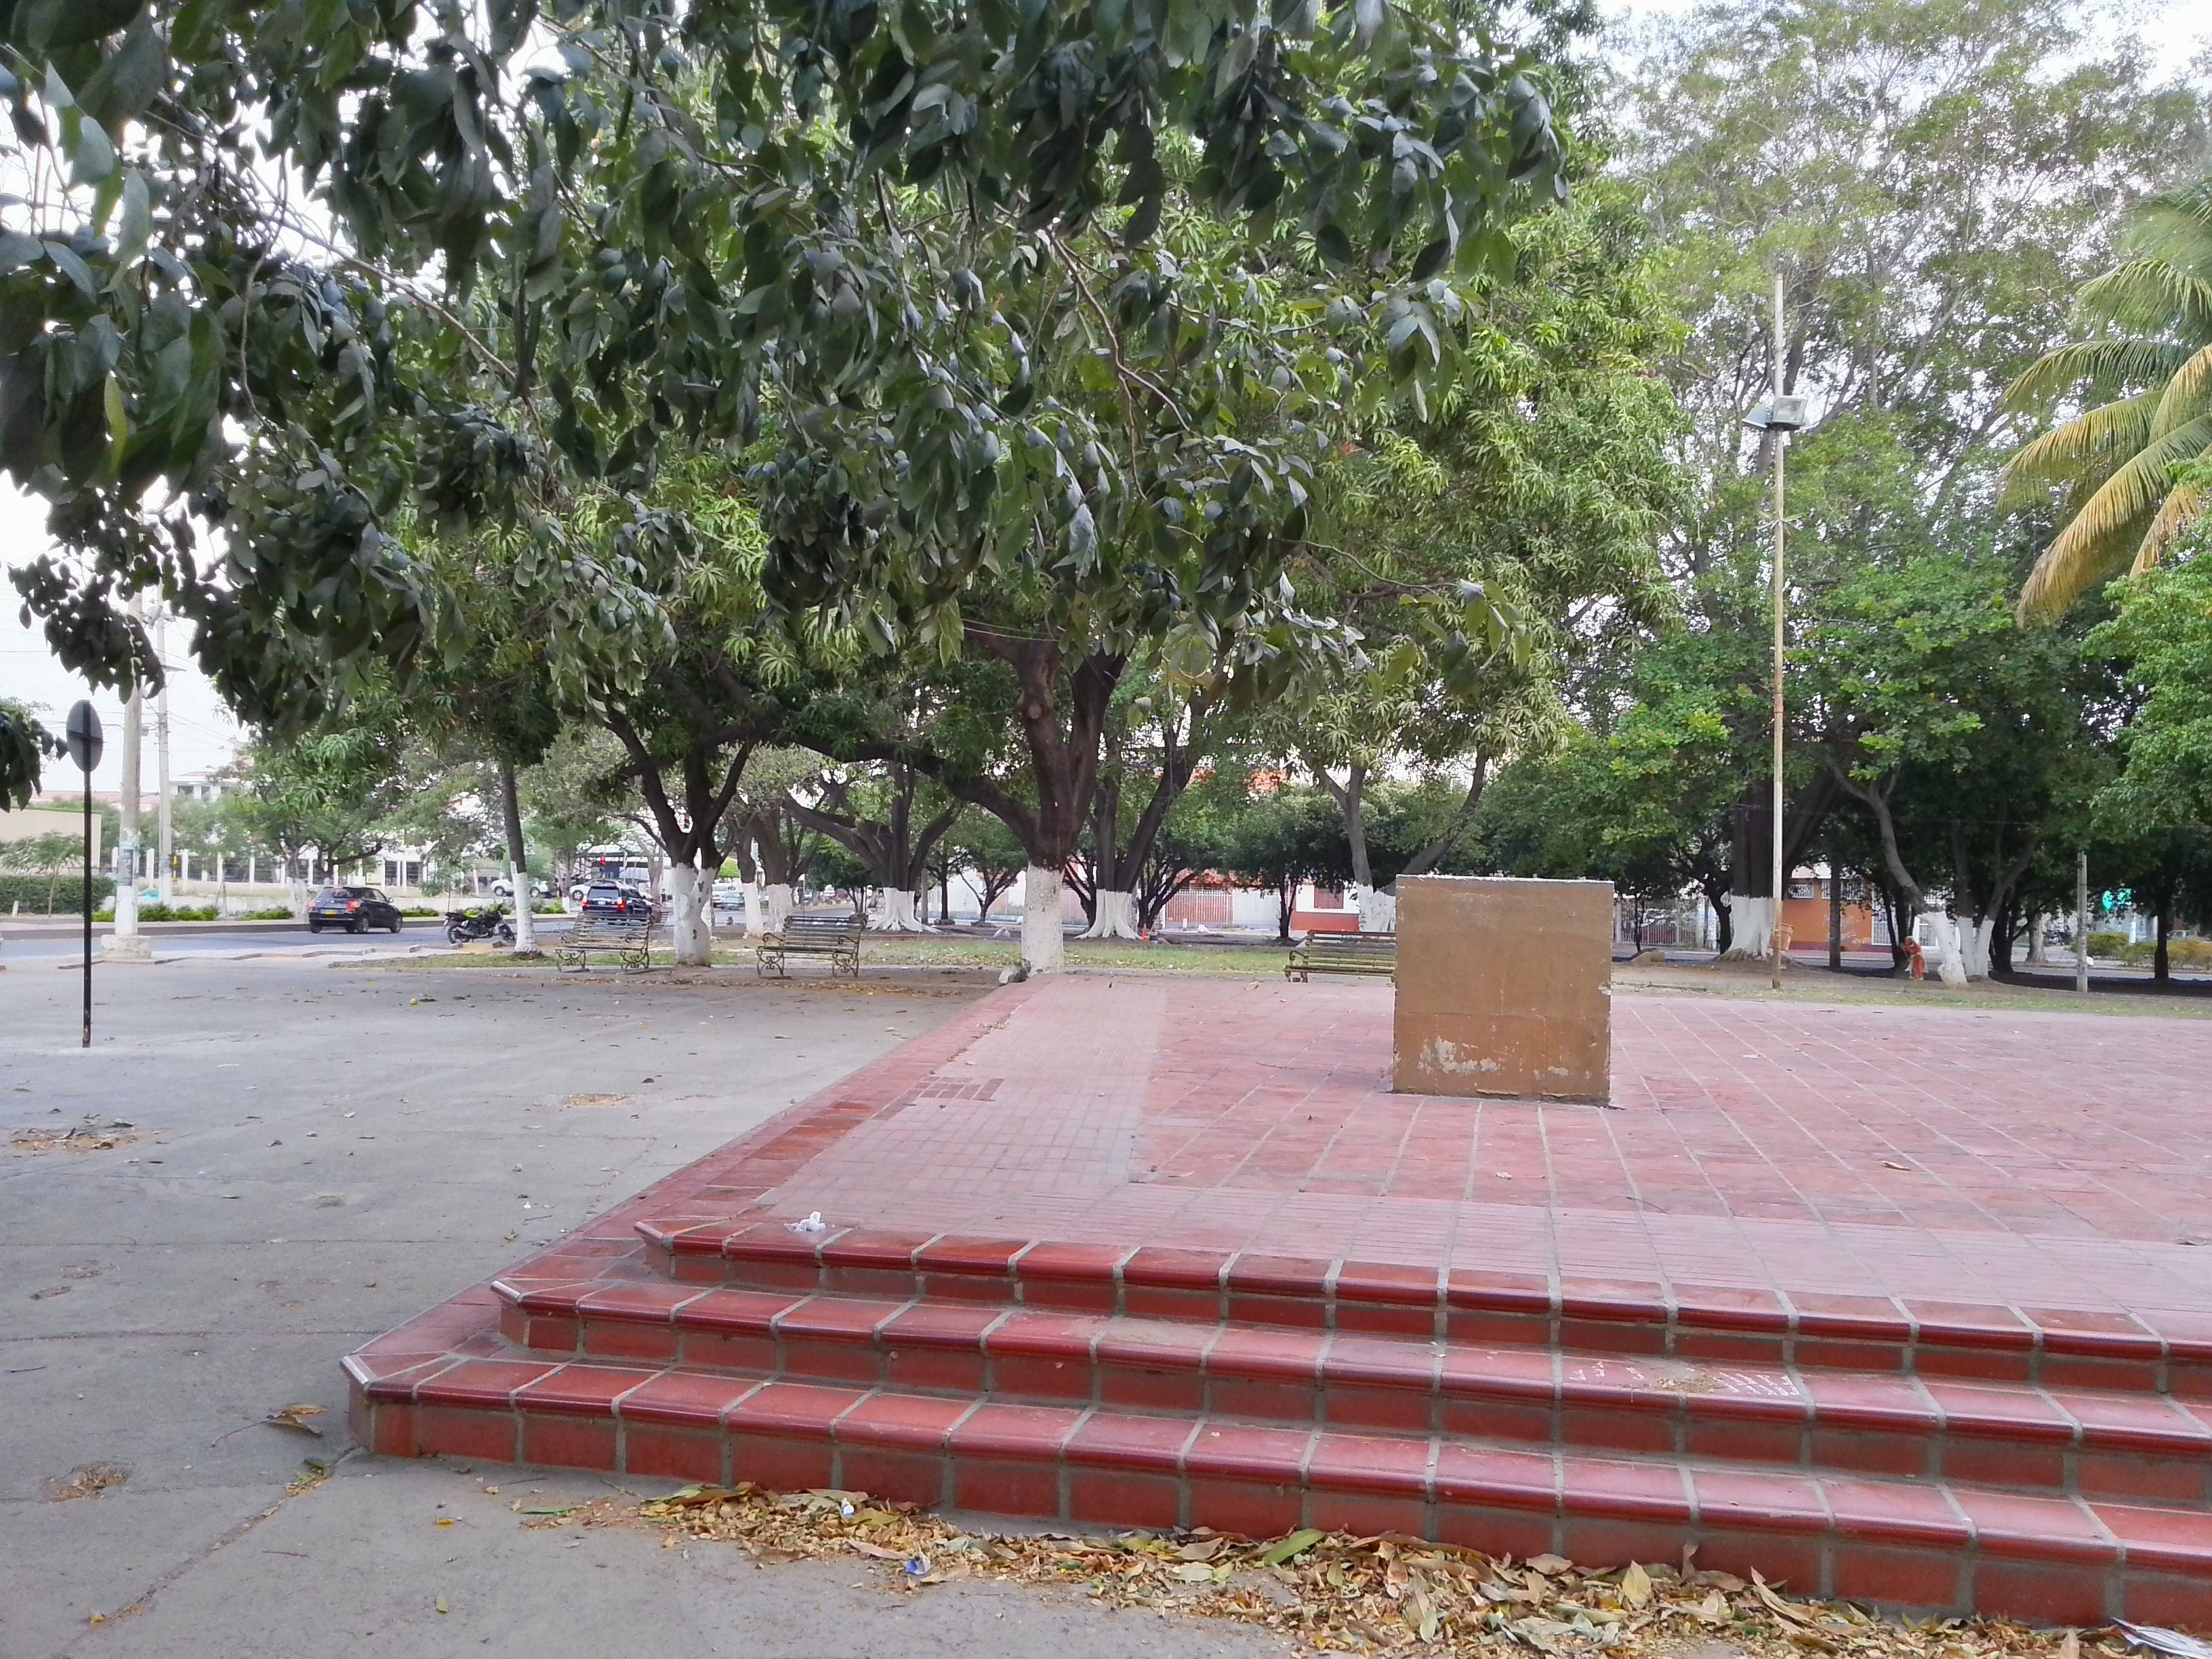 Square in Parque La Biblia